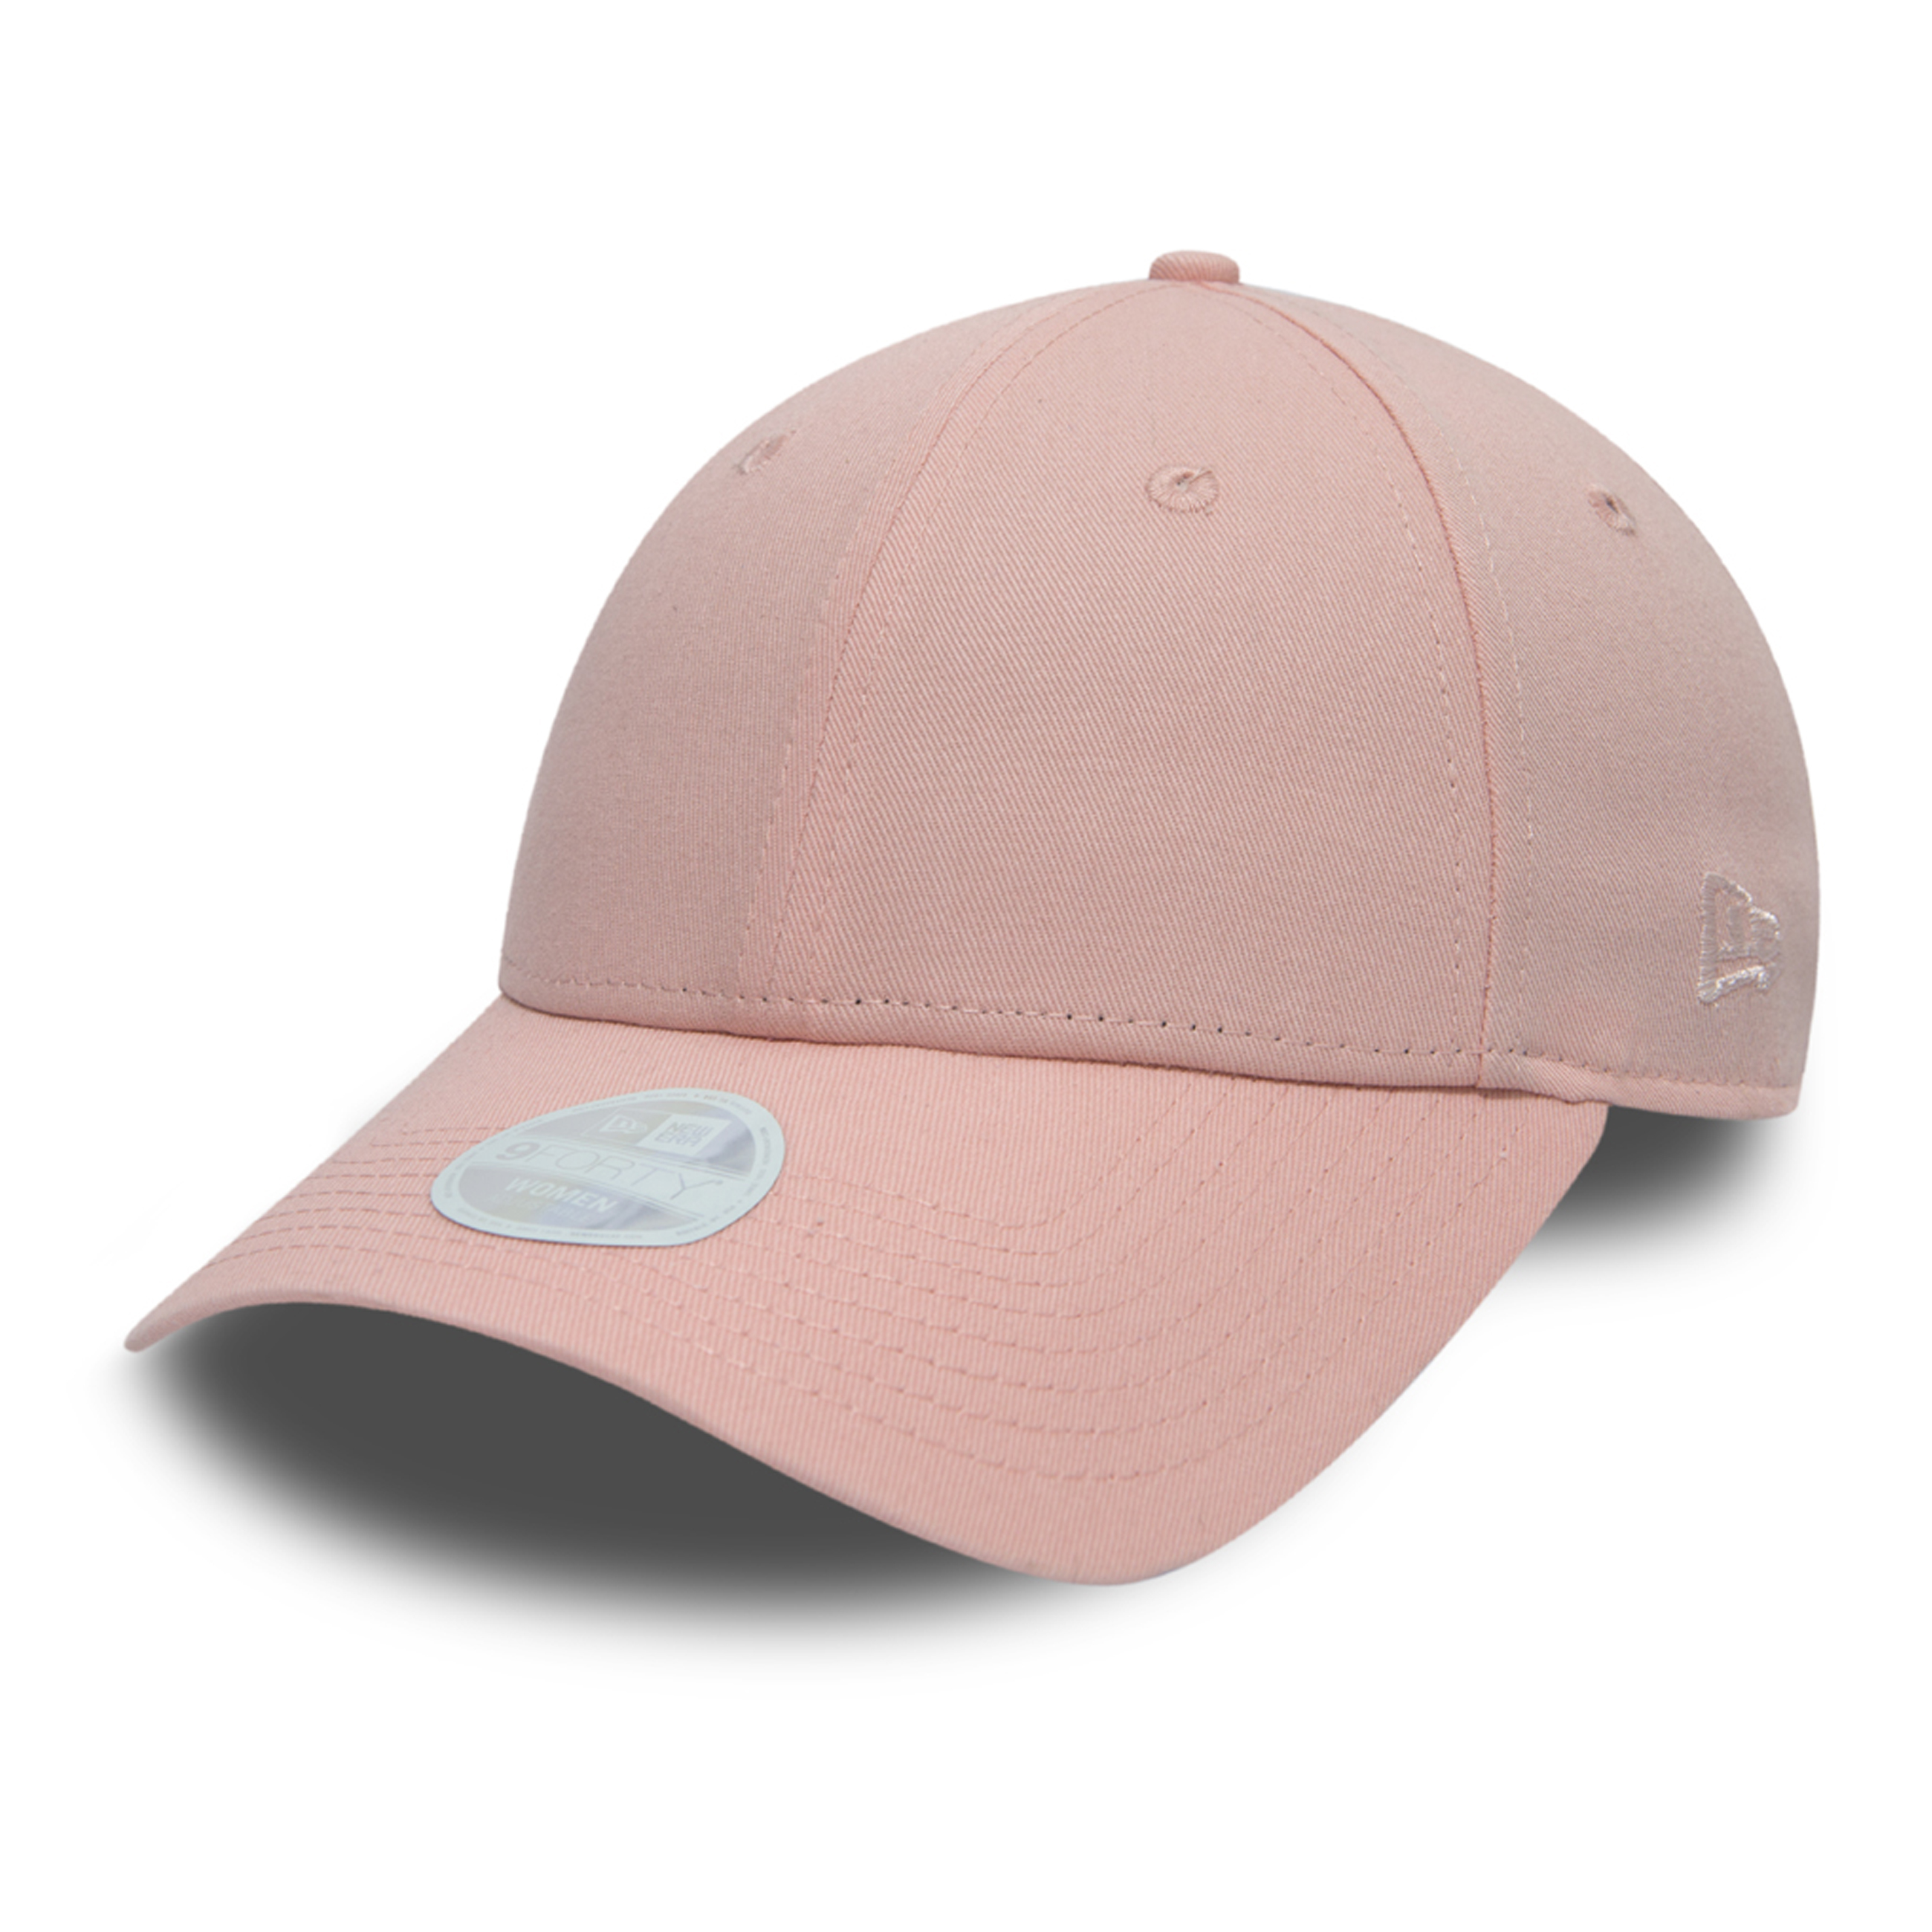 2fdd00e1b24 Details about New Era Women s Pastel 9FORTY Unbranded Cap Pink Lemonade One  Size